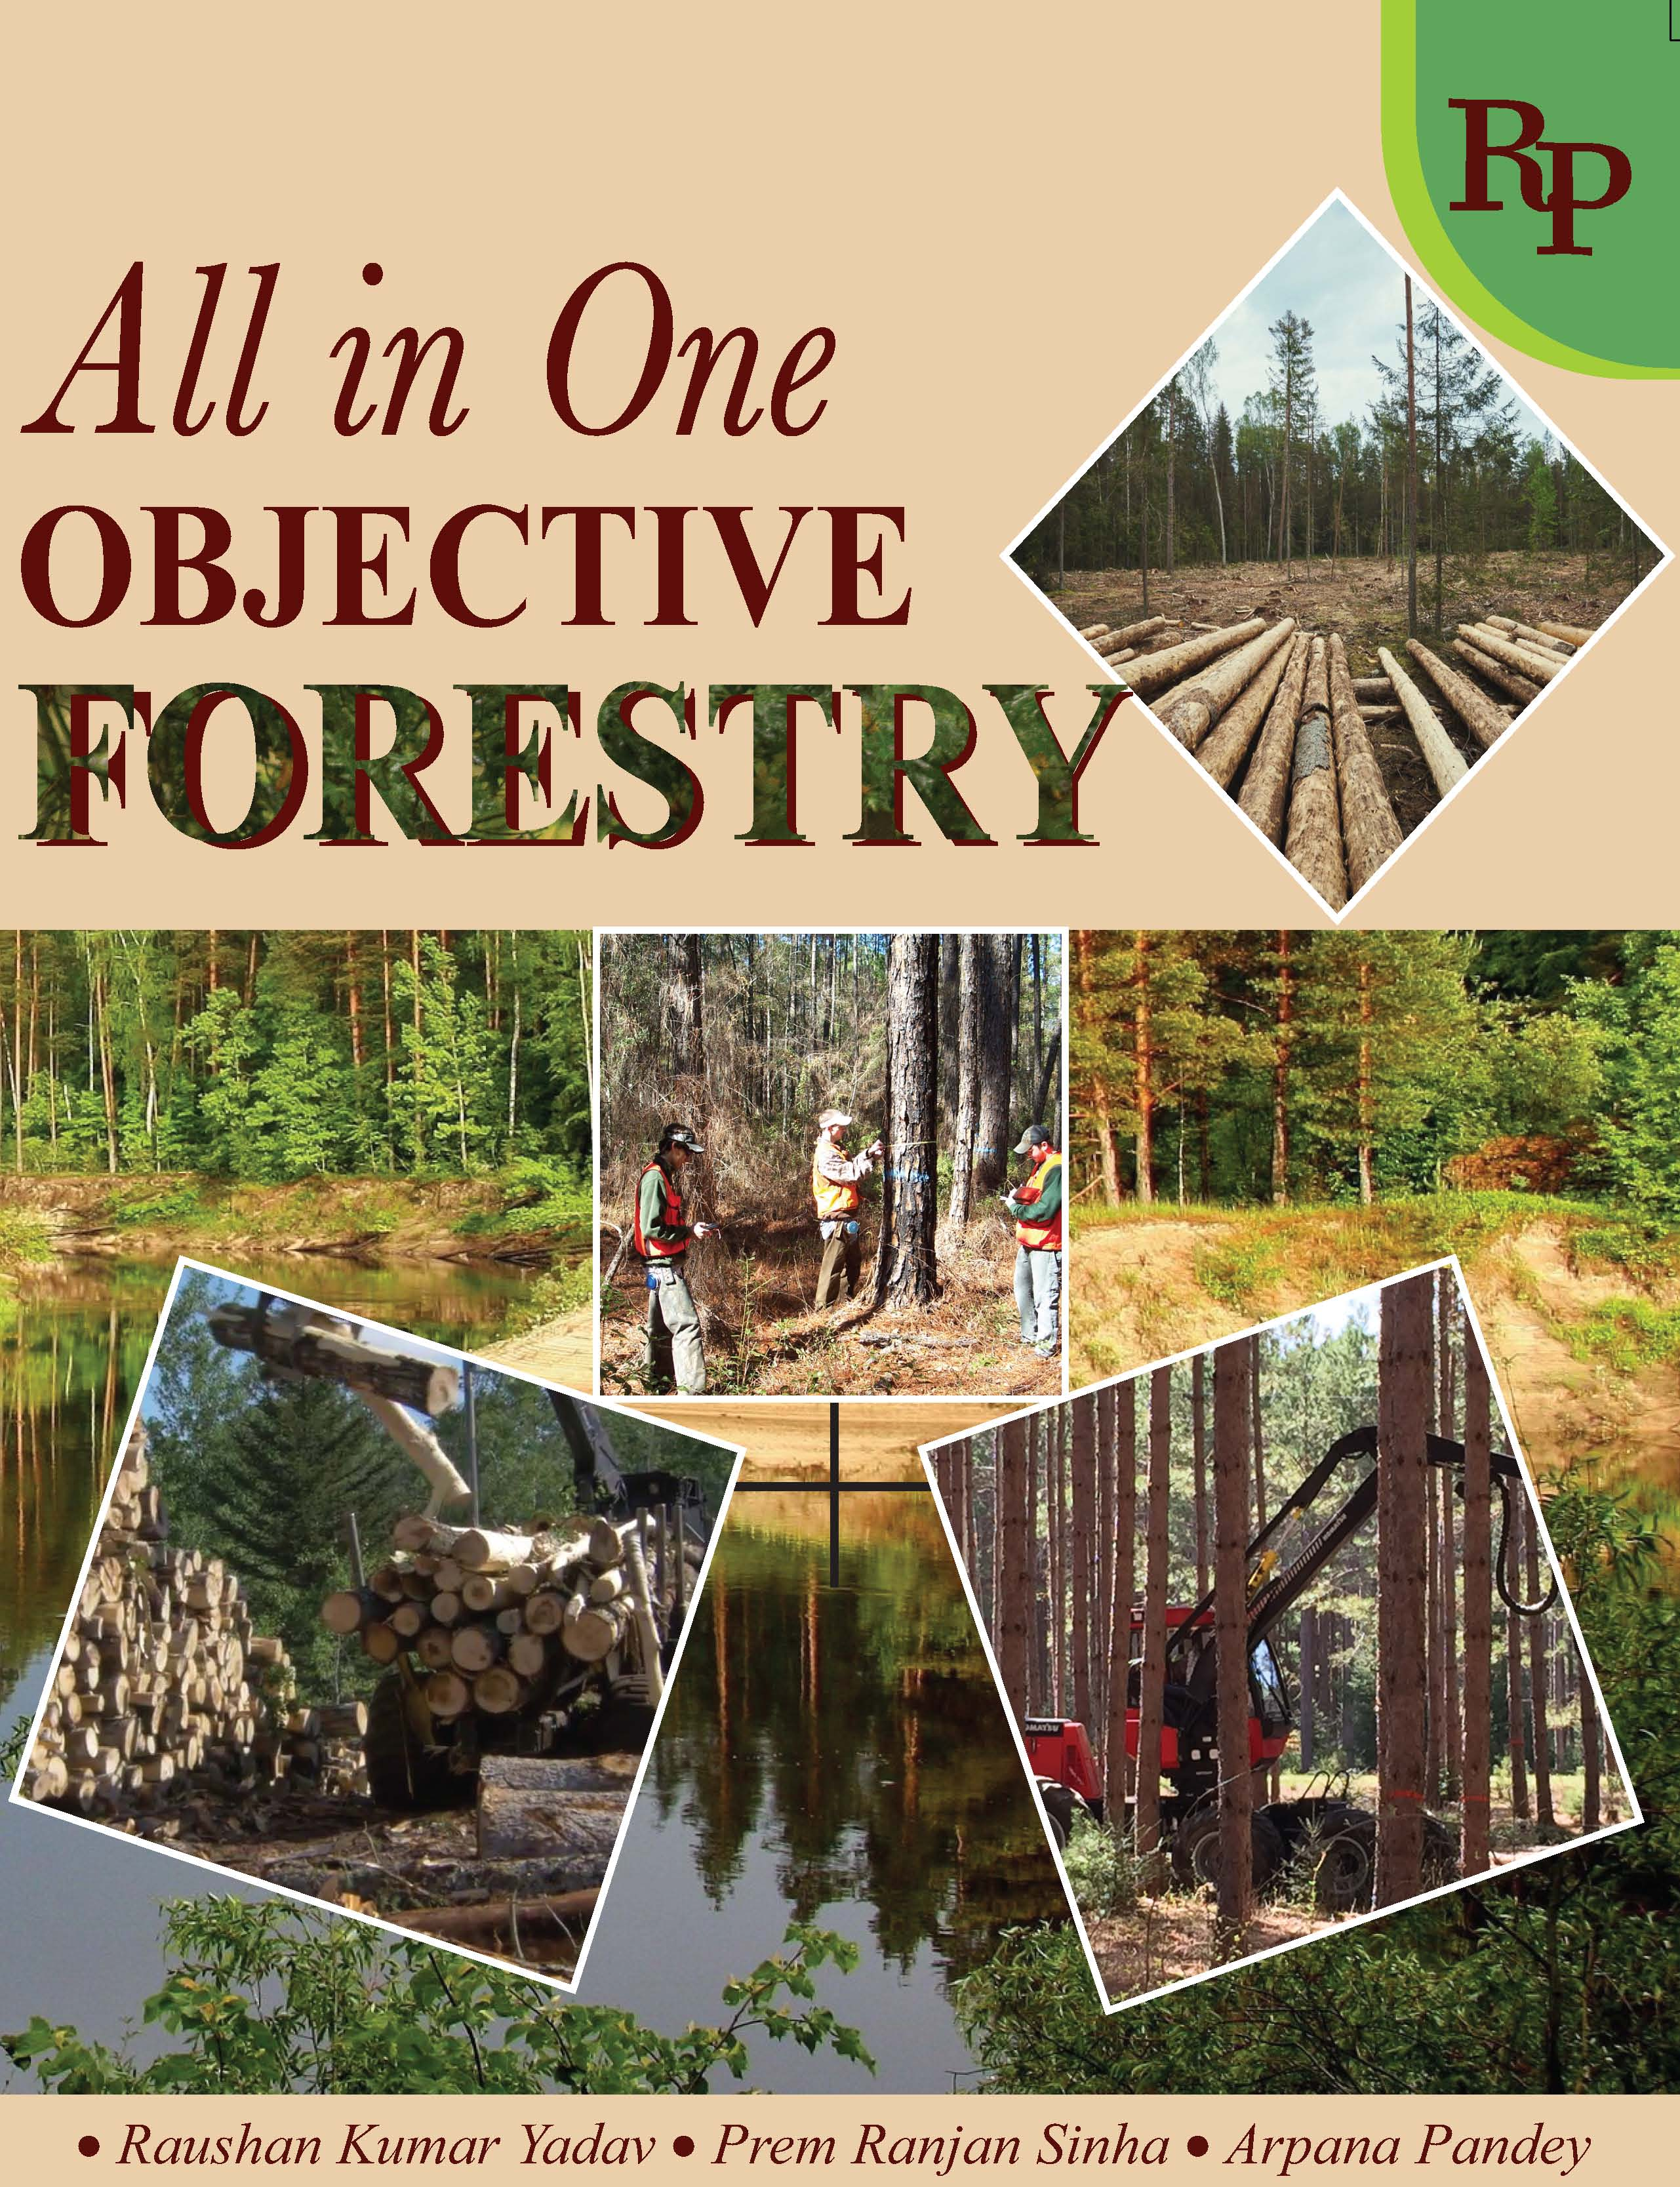 all in one objective forestry final (1).jpg